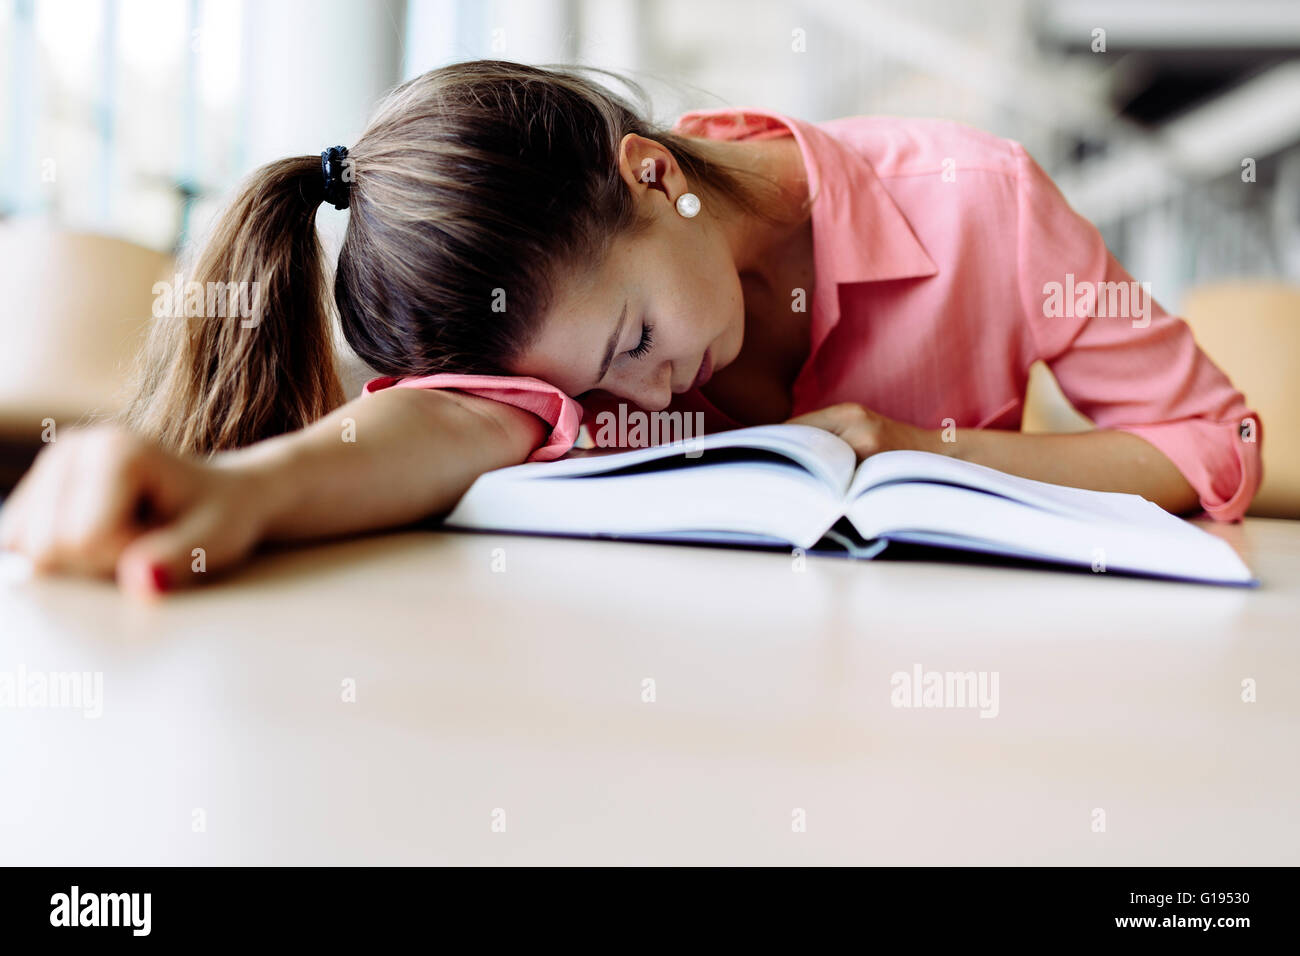 Beautiful pretty woman fallen asleep on the table while studying and reading a book - Stock Image